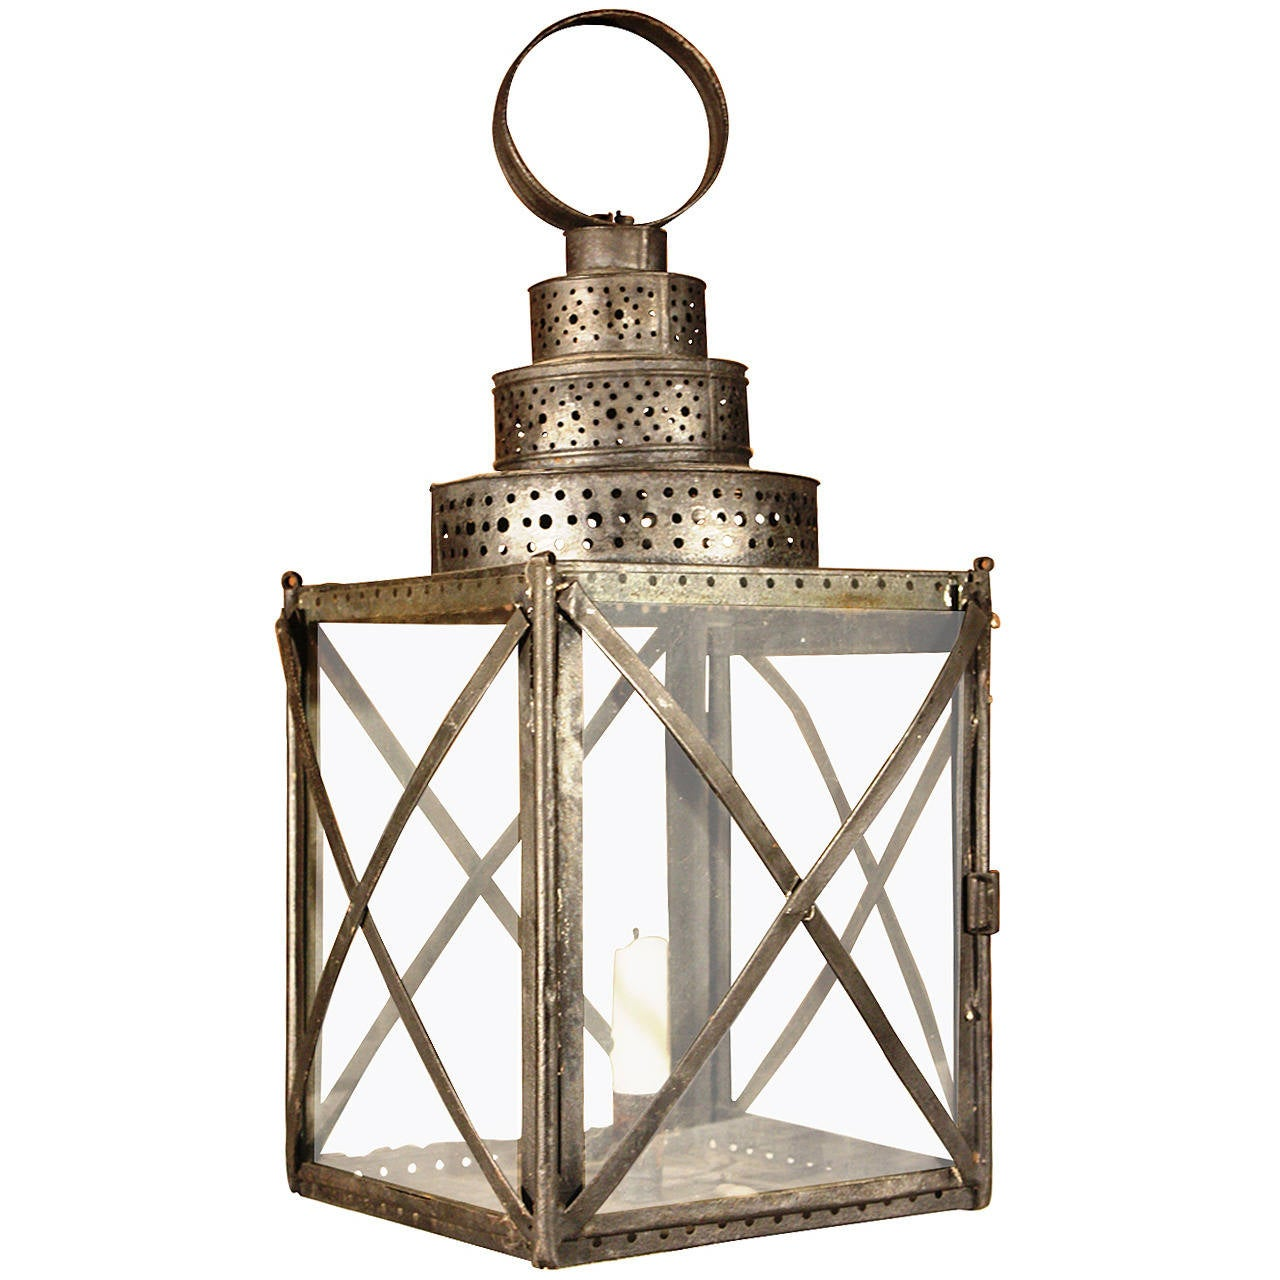 decorative tin lantern at 1stdibs. Black Bedroom Furniture Sets. Home Design Ideas